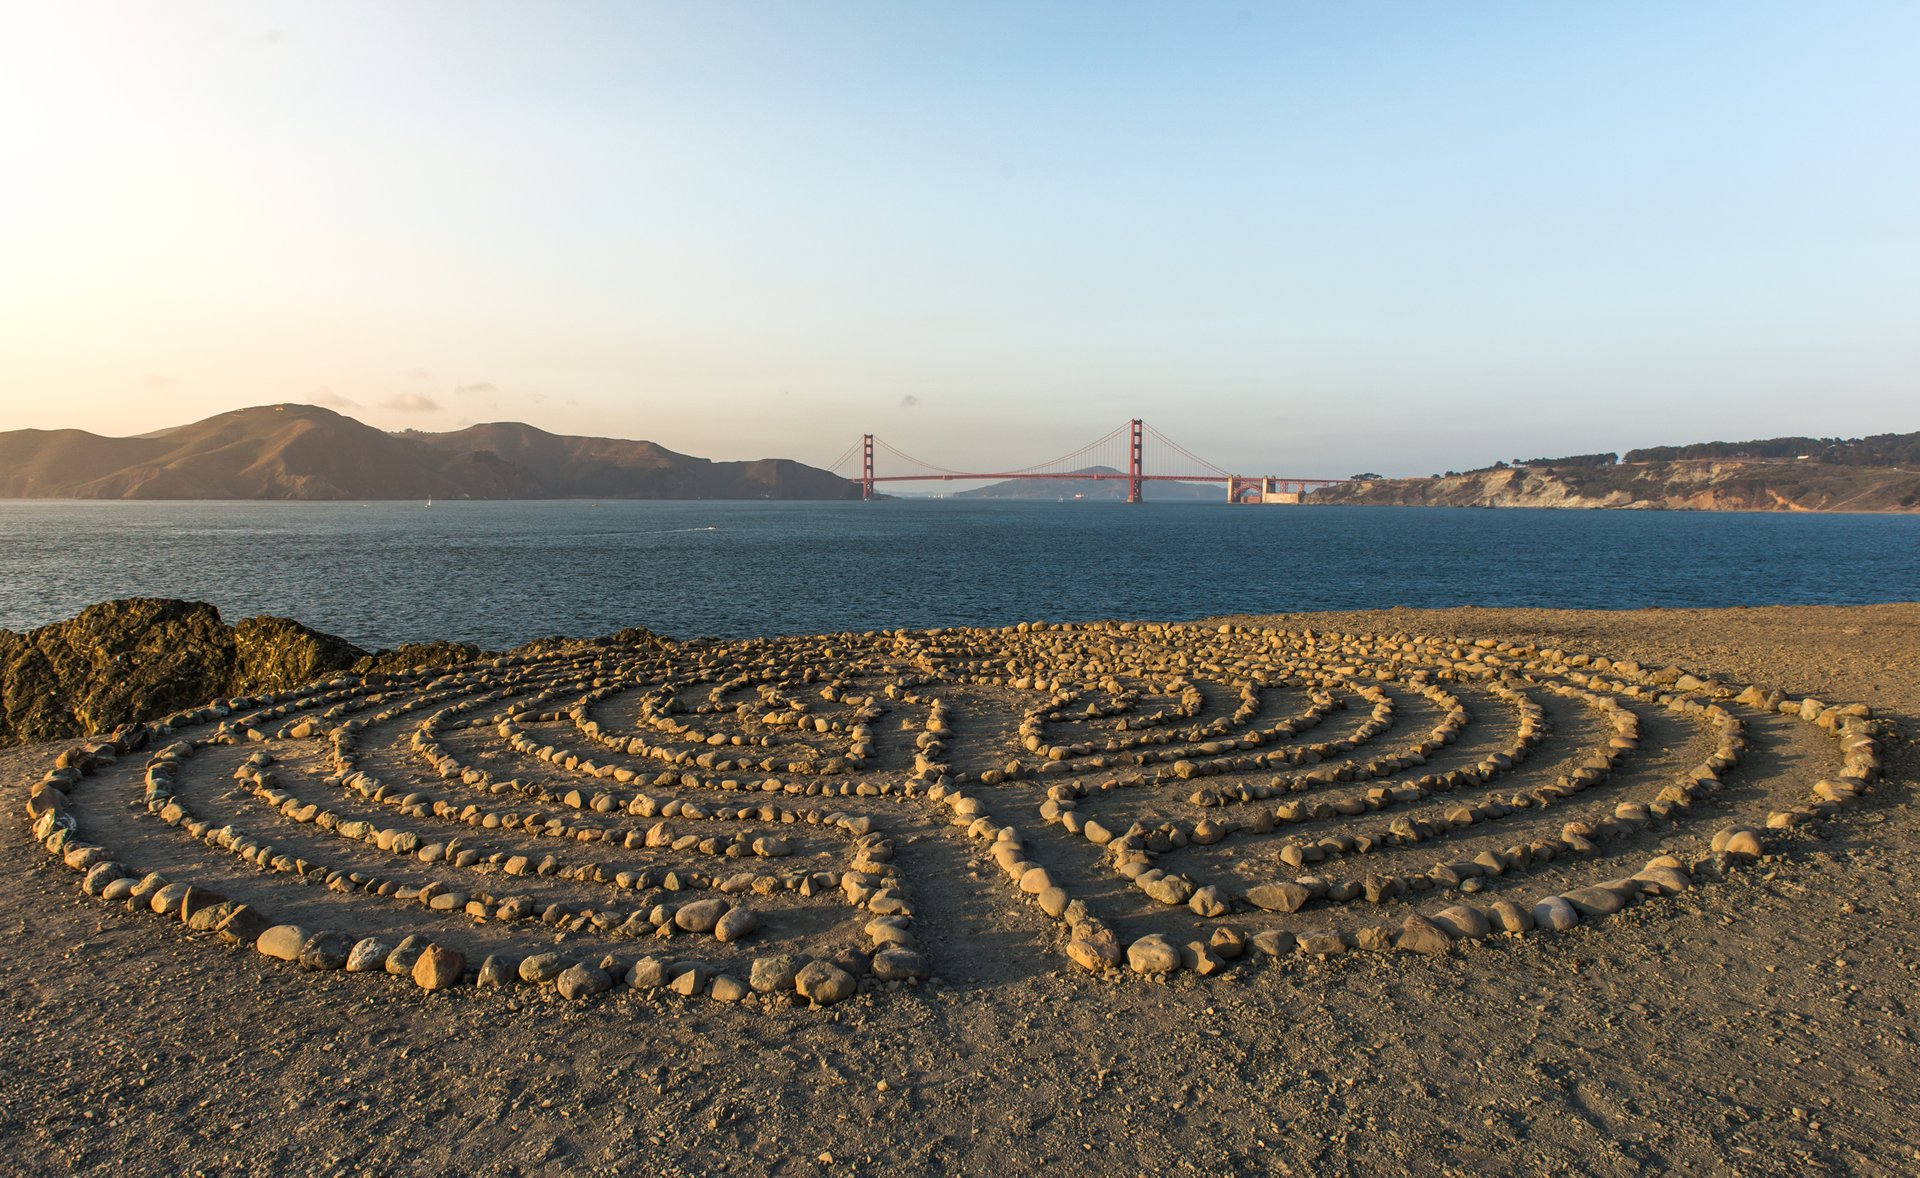 Land's End Labyrinth in San Francisco - Best Time